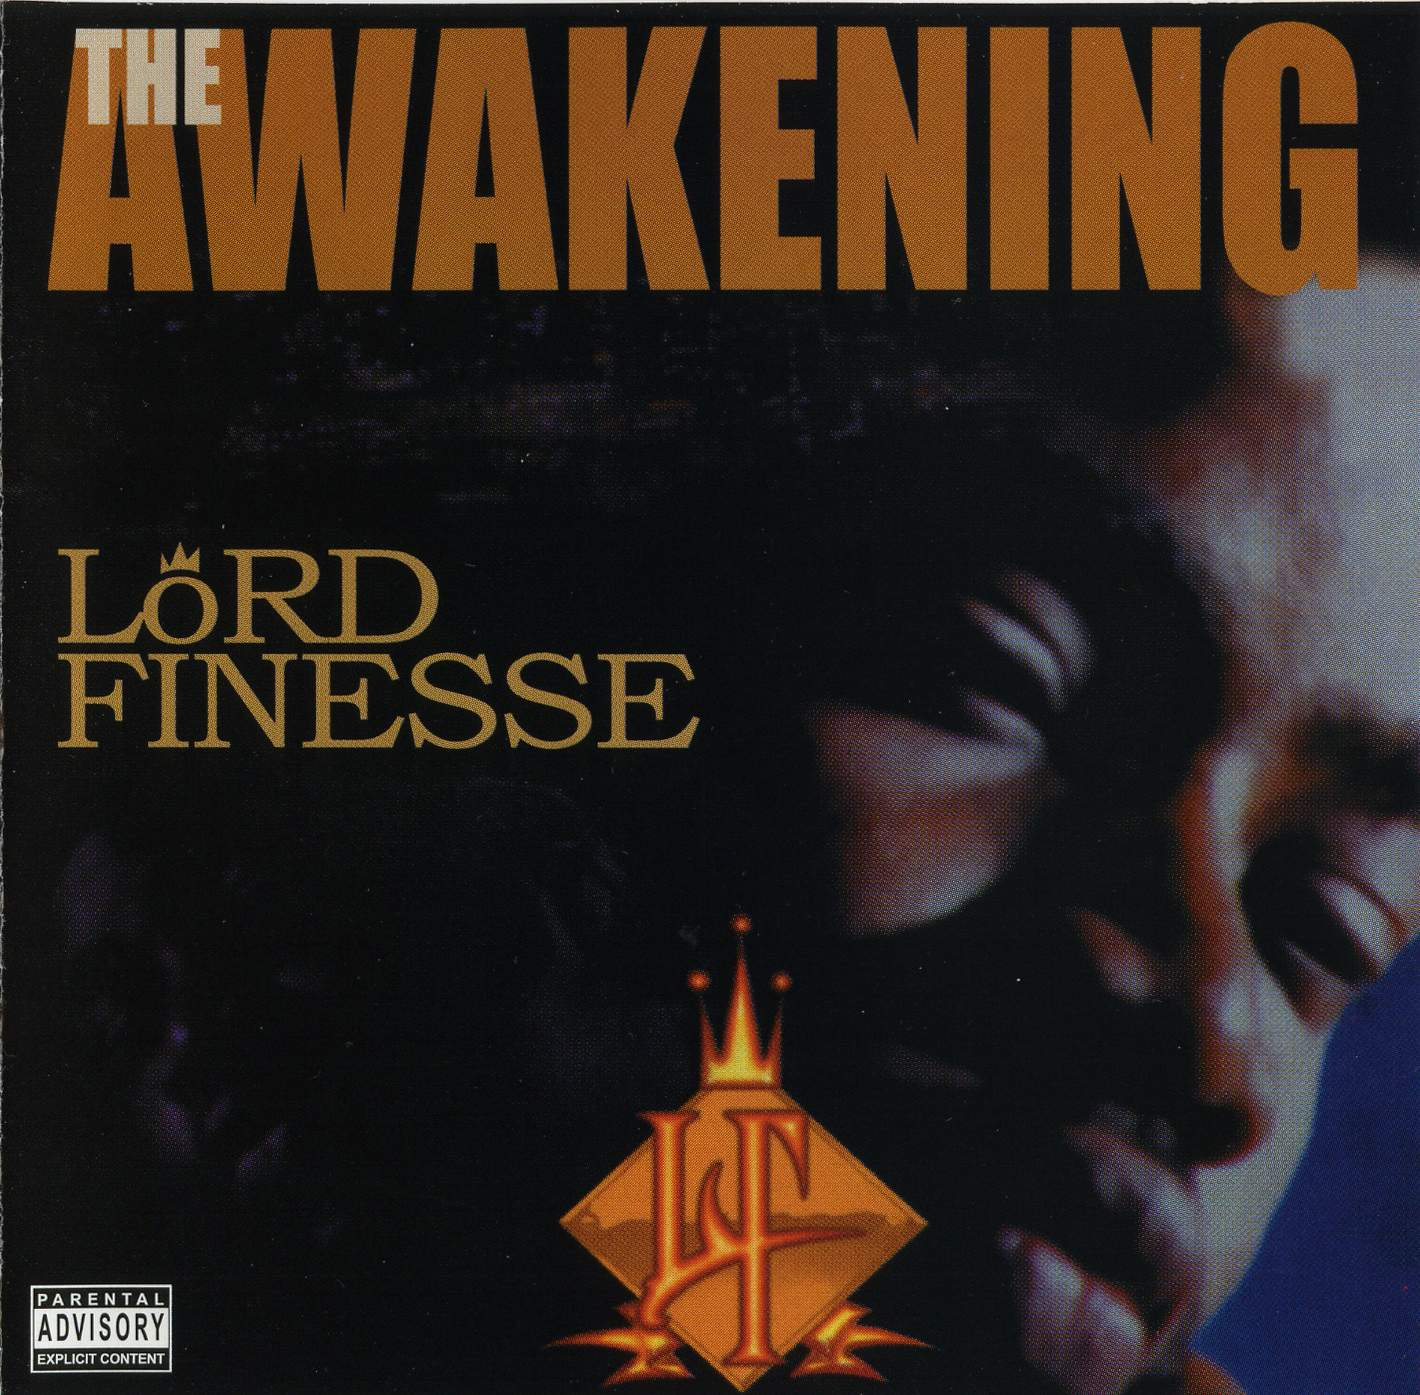 Lord Finesse – The Awakening (Instrumentals) (1995) (192 kbps)